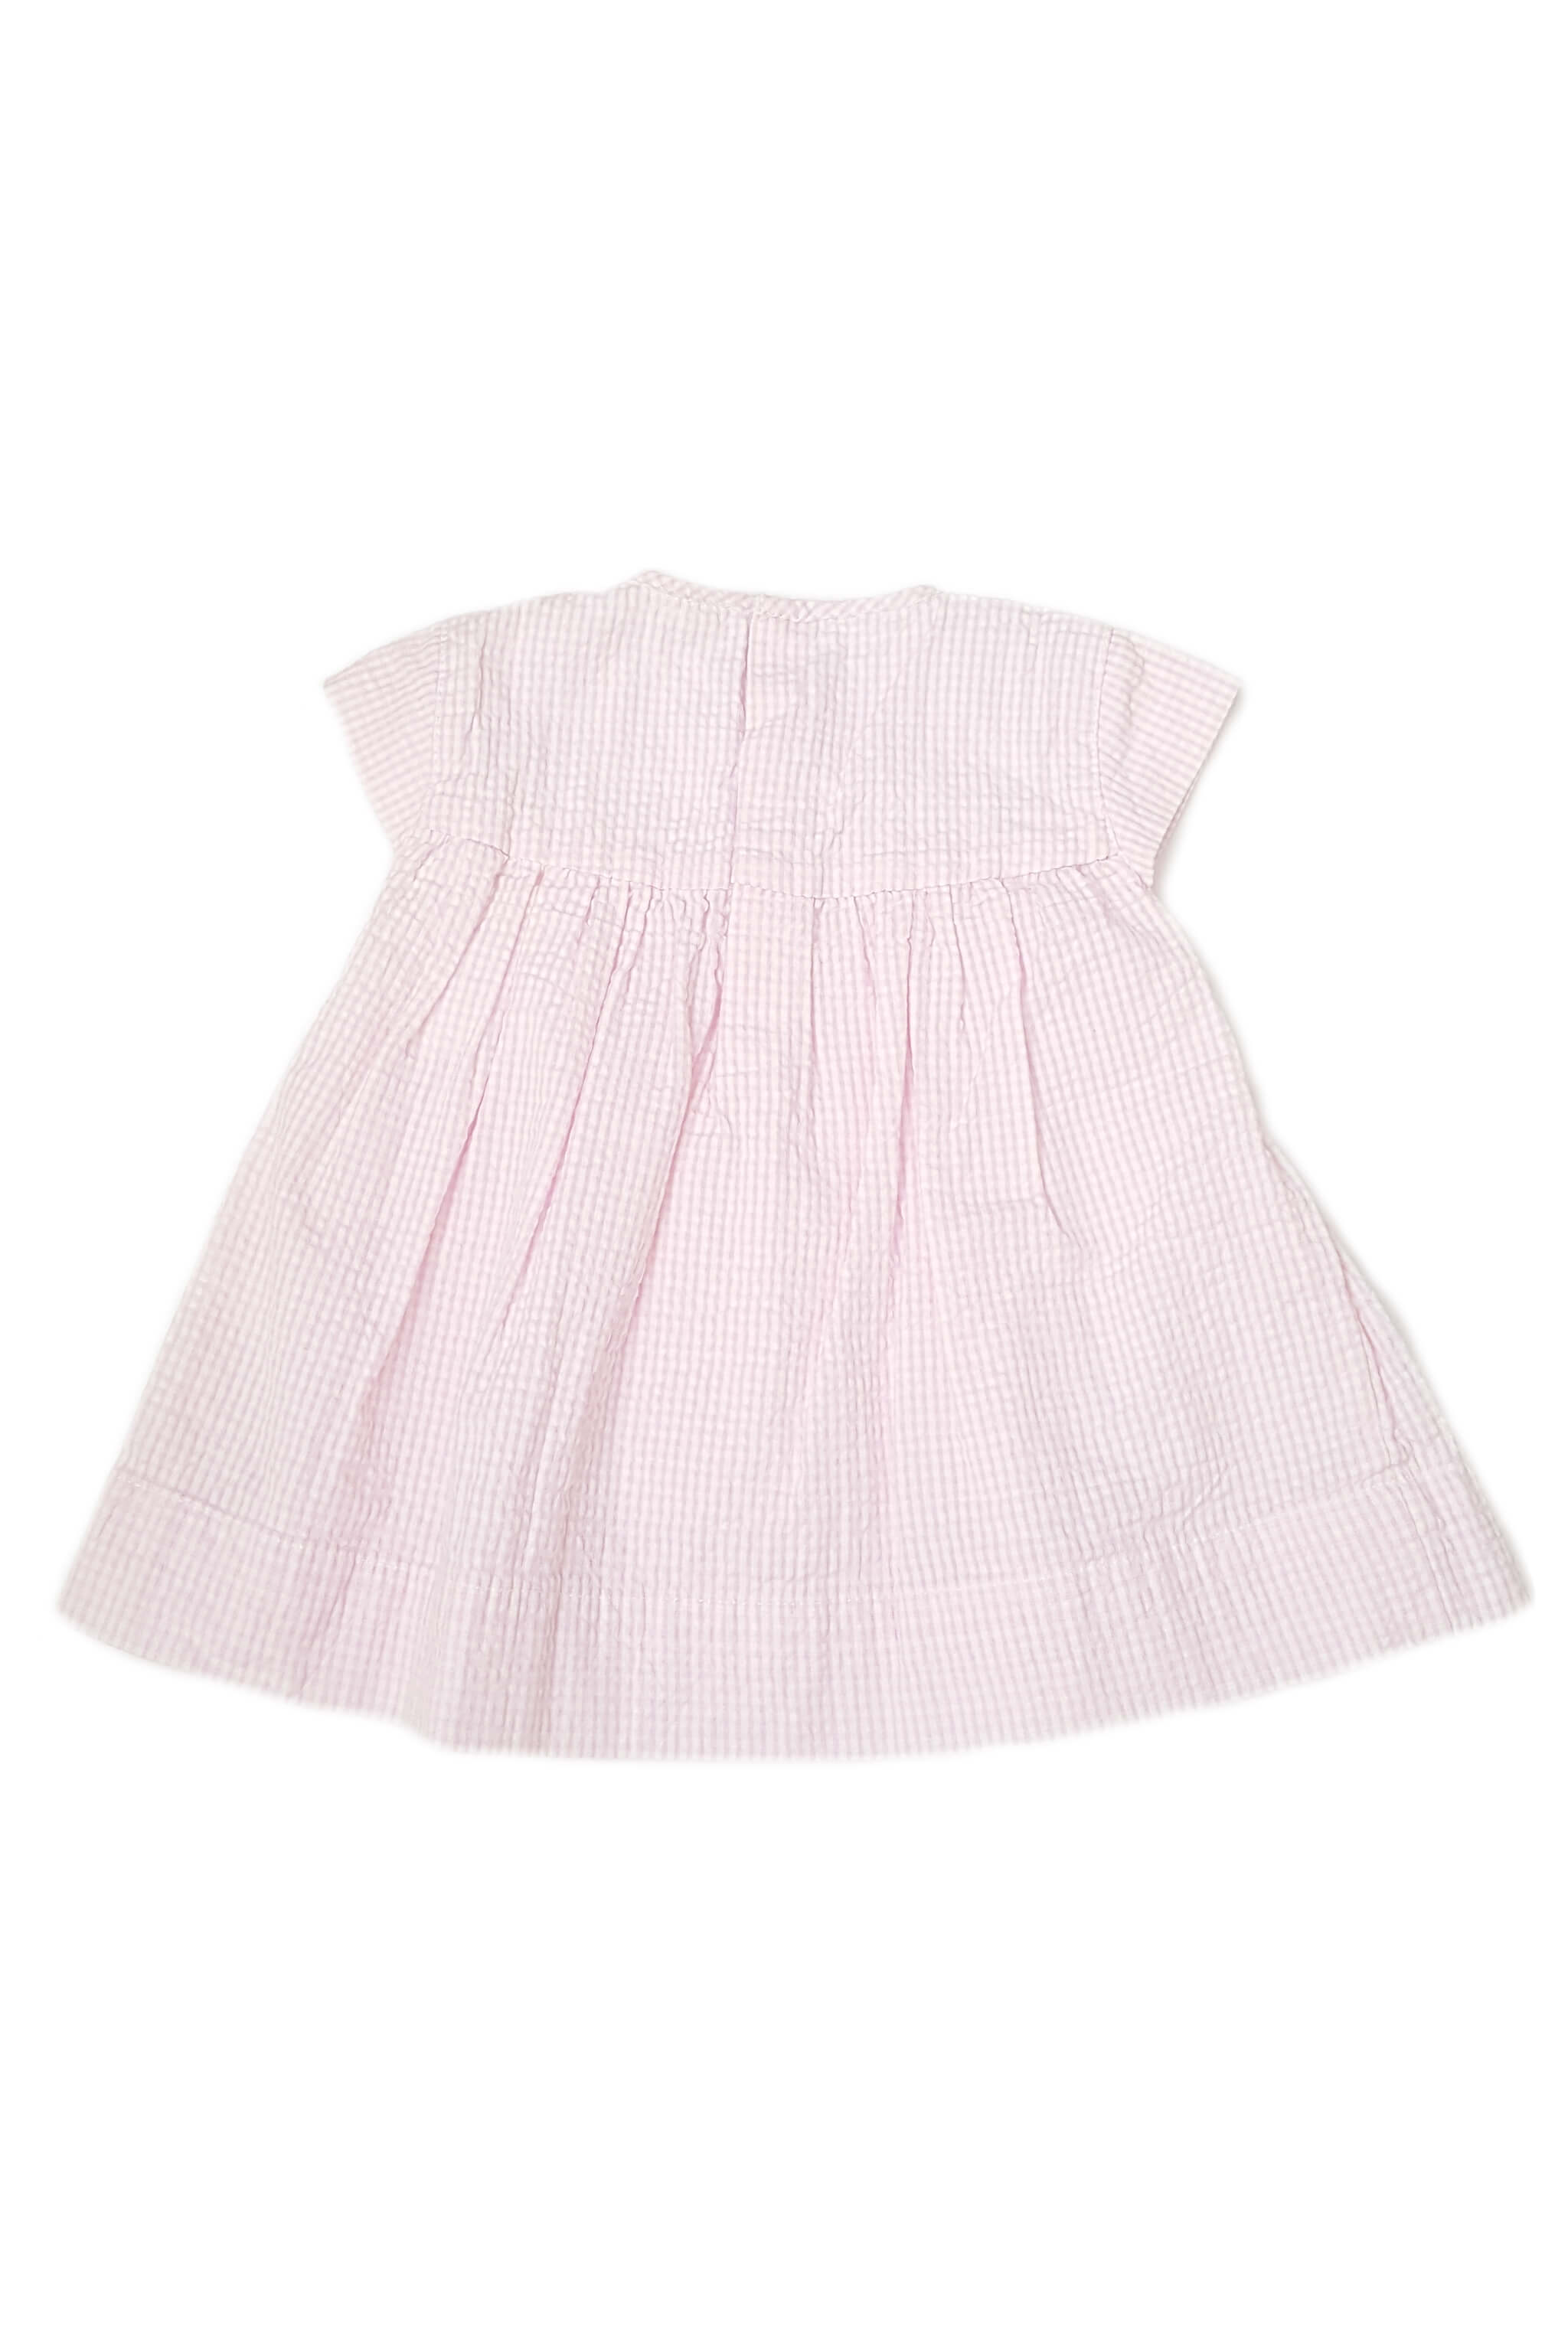 Back of classic pale pink seersucker dress with cap sleeves and hand-smocked bodice with snap fastening for baby girls